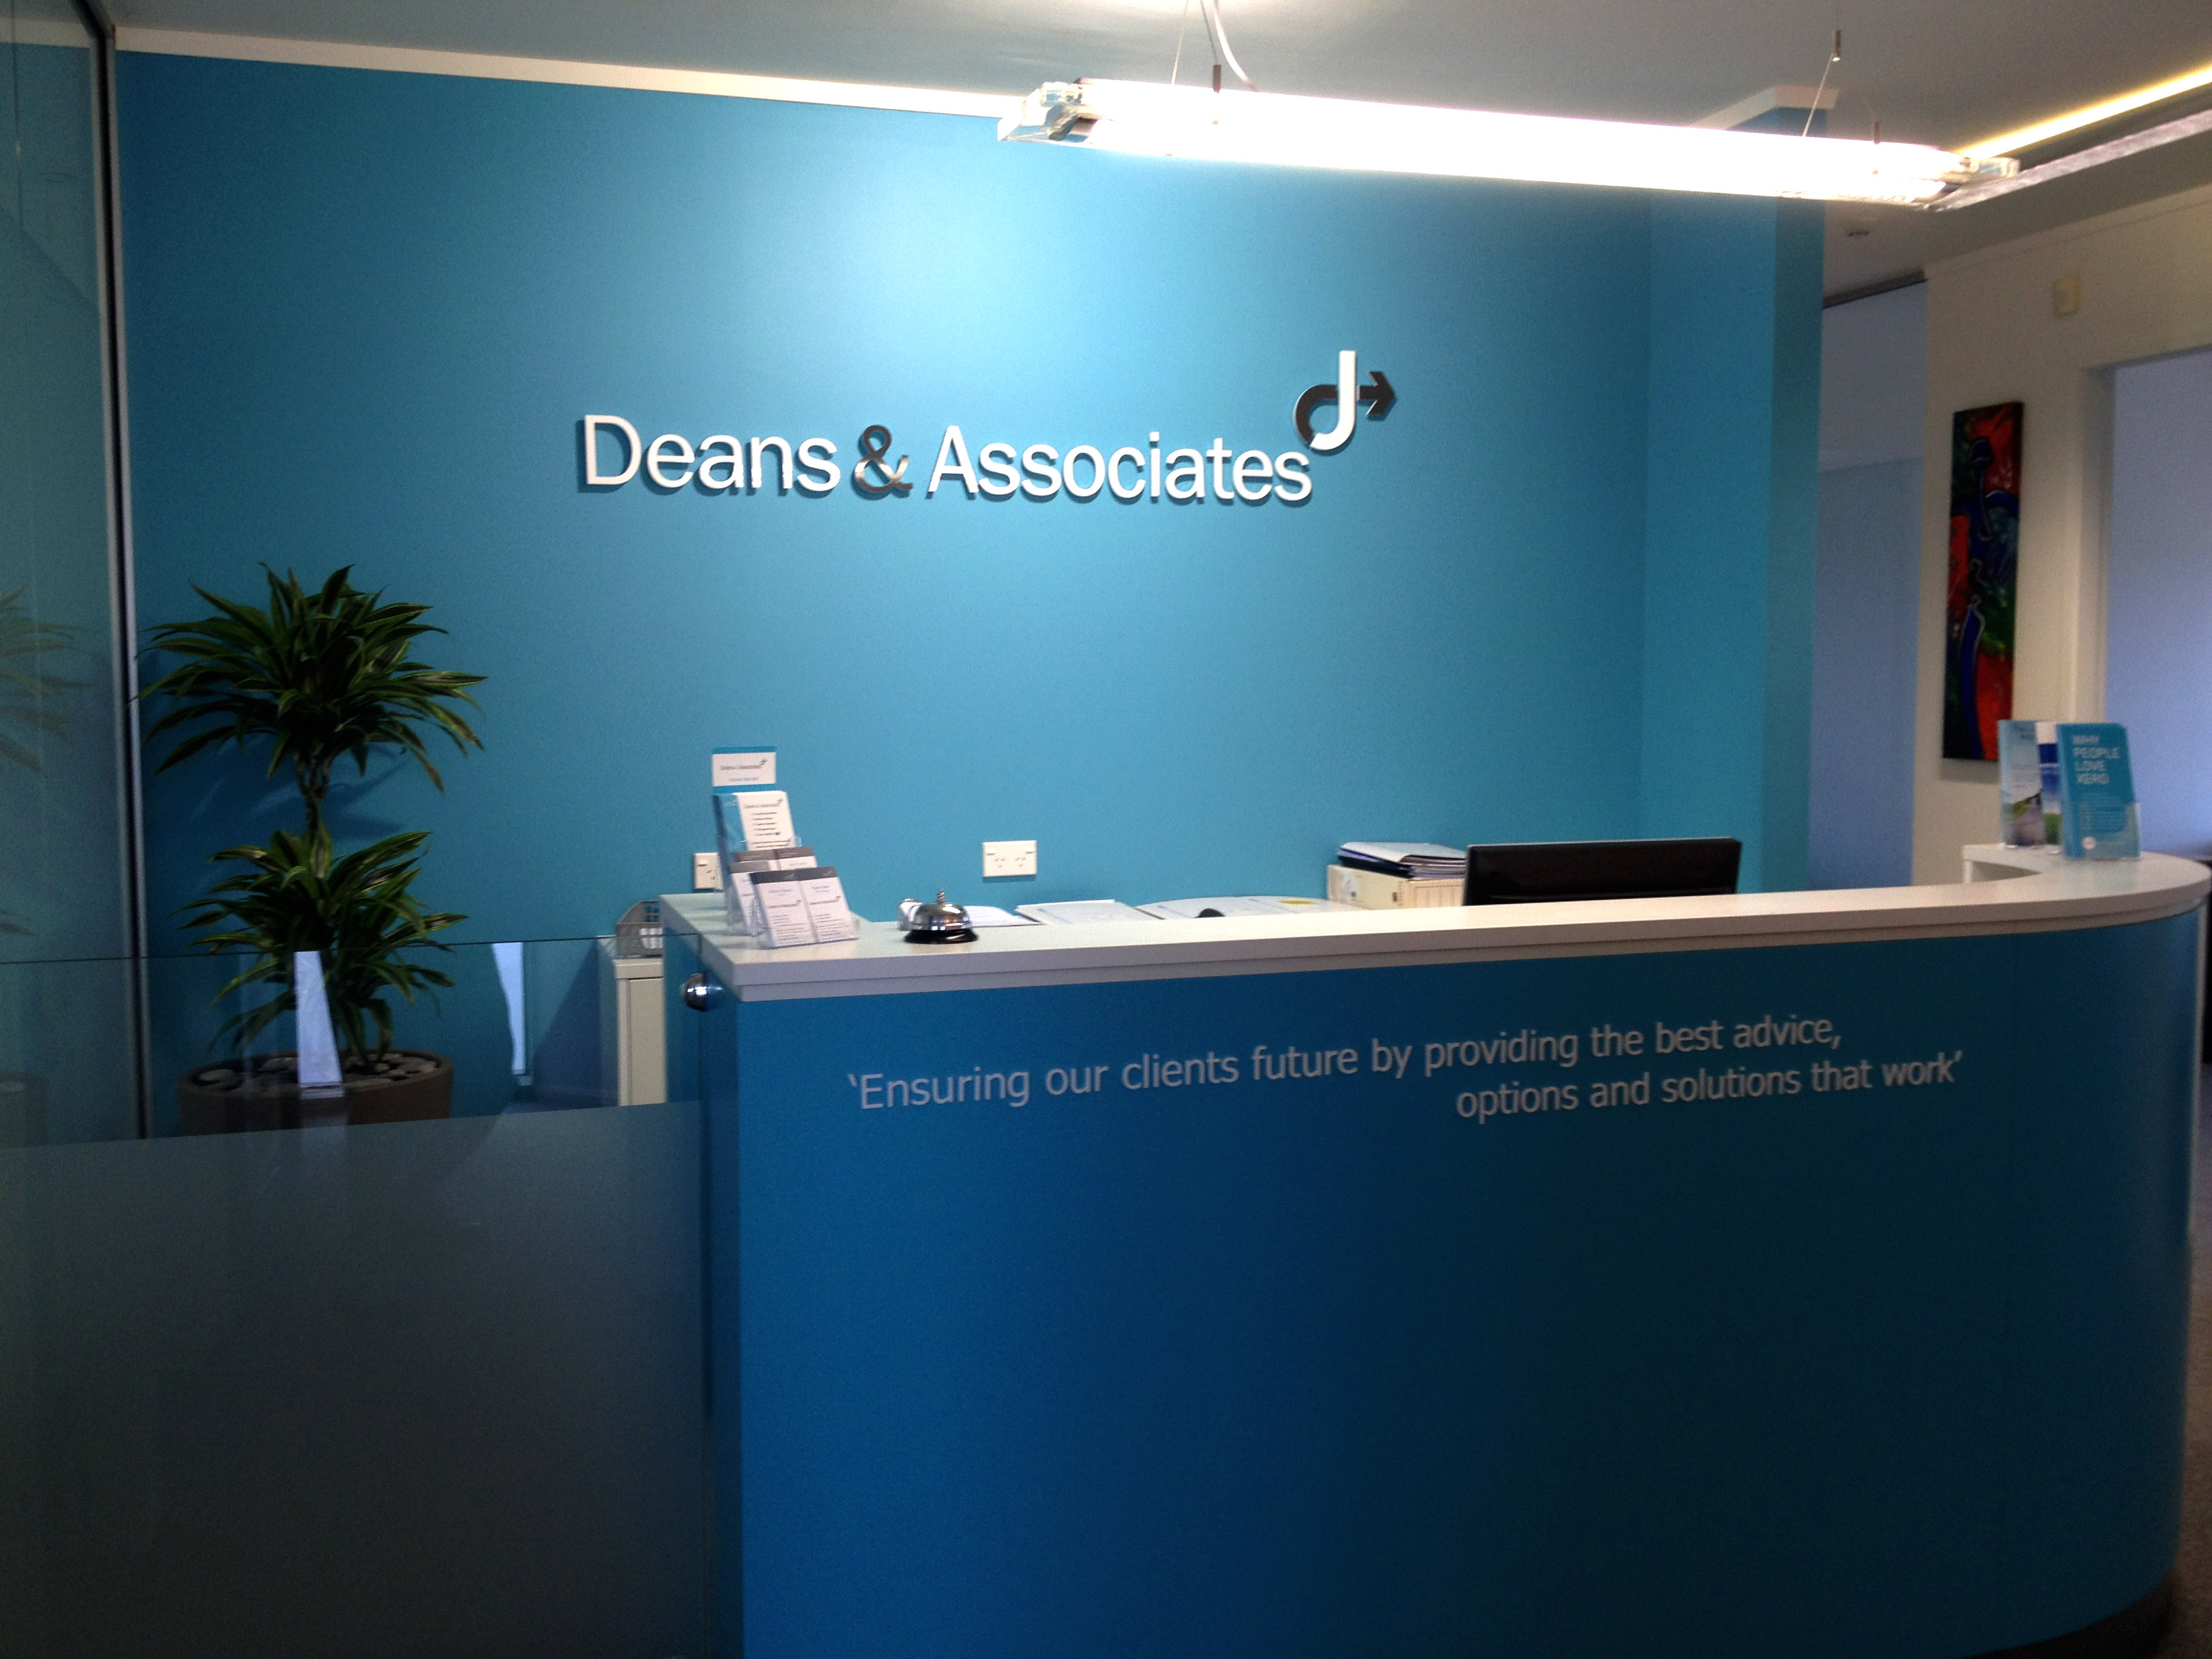 Deans and Associates